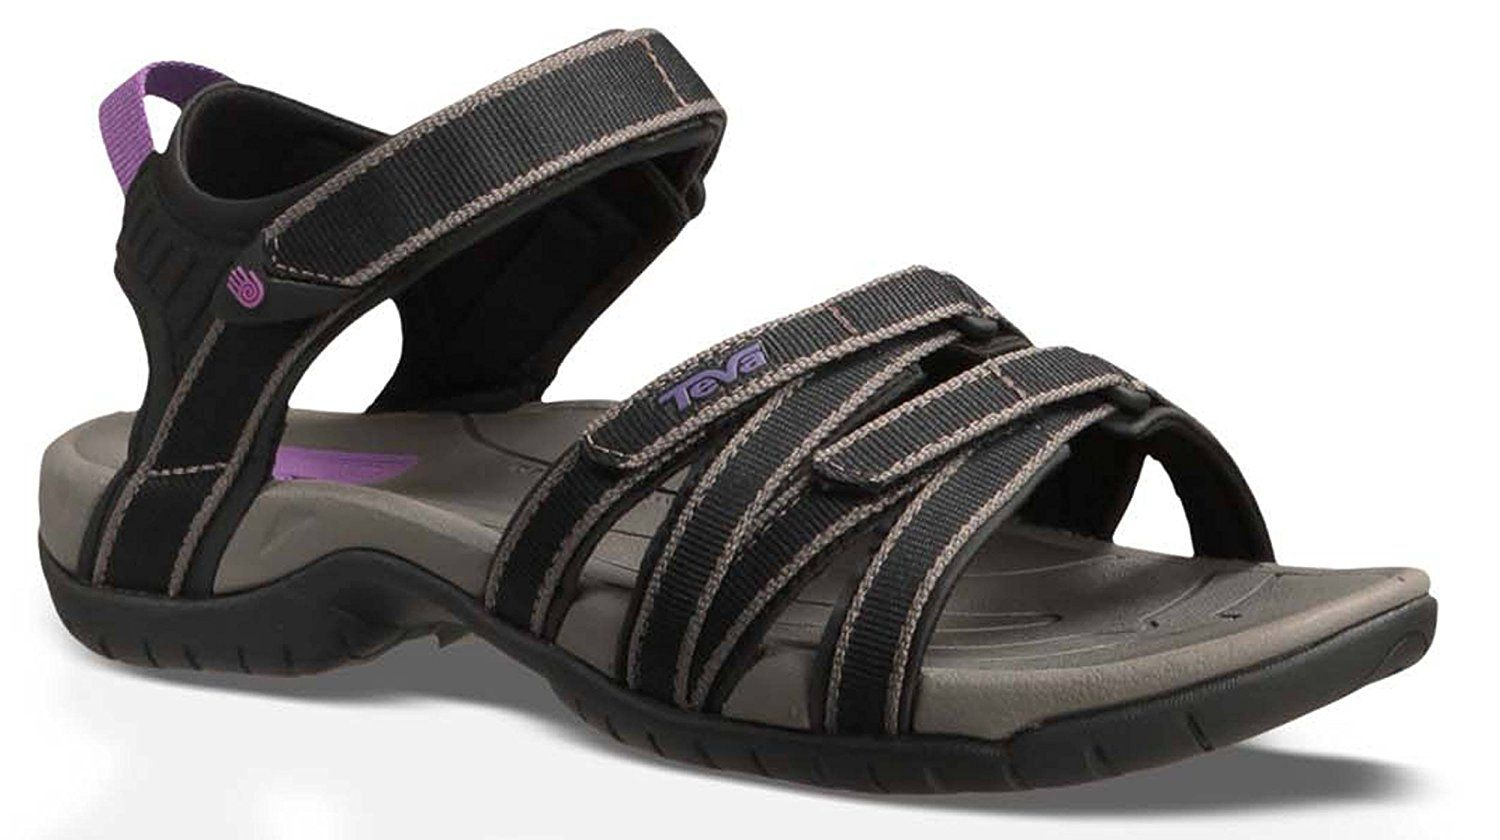 c1fc7501f068 Teva Tirra Sandal - Women s Black   Grey 7     Insider s special review you  can t miss. Read more   Teva sandals